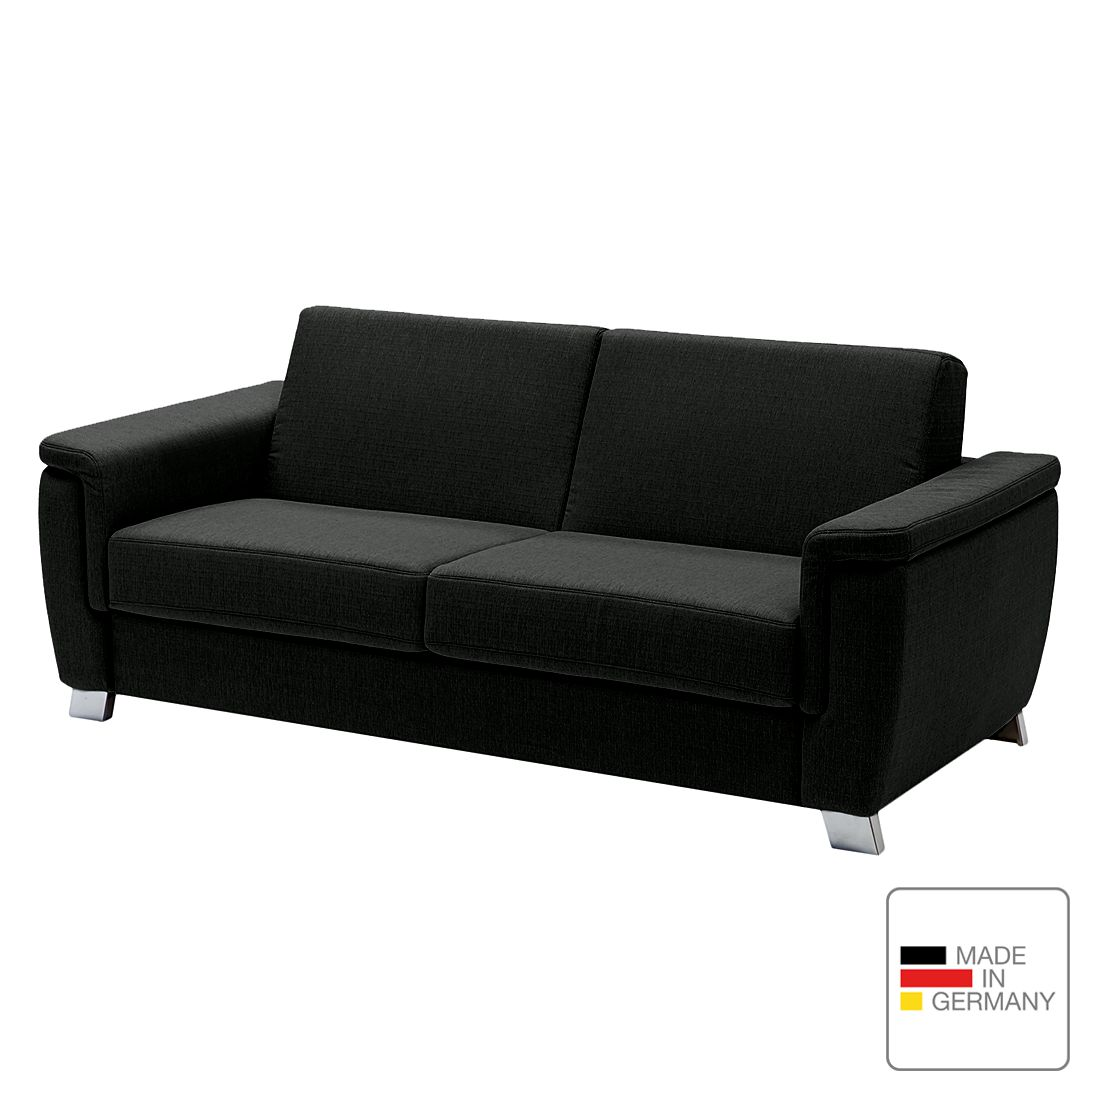 schlafsofa pidaro ii webstoff kaltschaum schwarz abgerundete armlehnen studio monroe. Black Bedroom Furniture Sets. Home Design Ideas